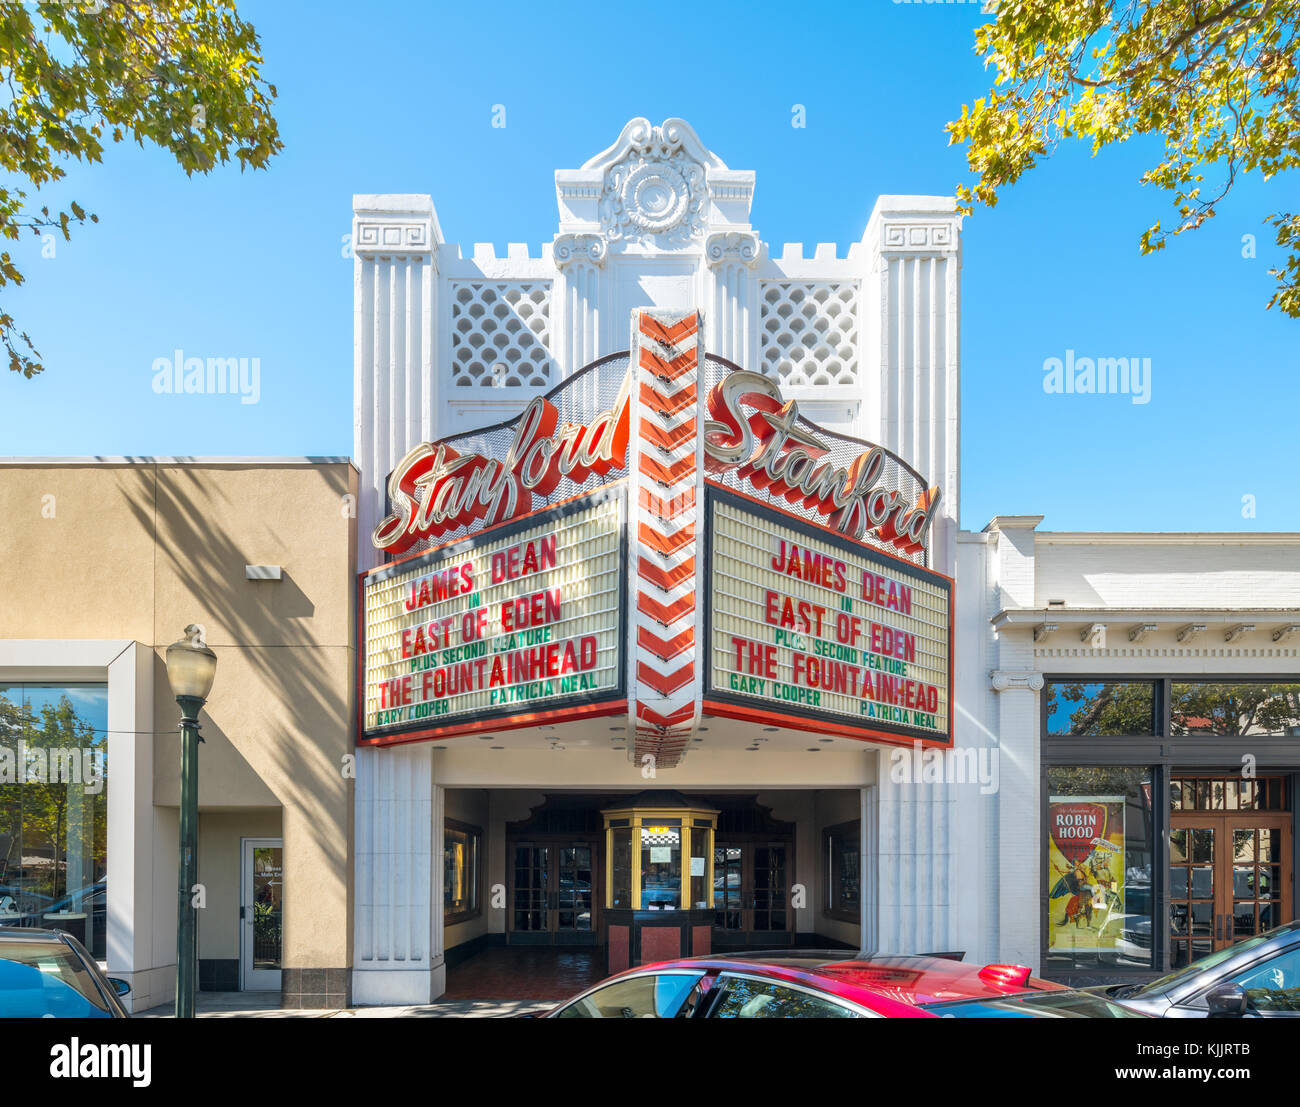 Restored 1925 Palo Alto Stanford Movie Theater showing East of Eden with James Dean and The Fountainhead by Ayn - Stock Image